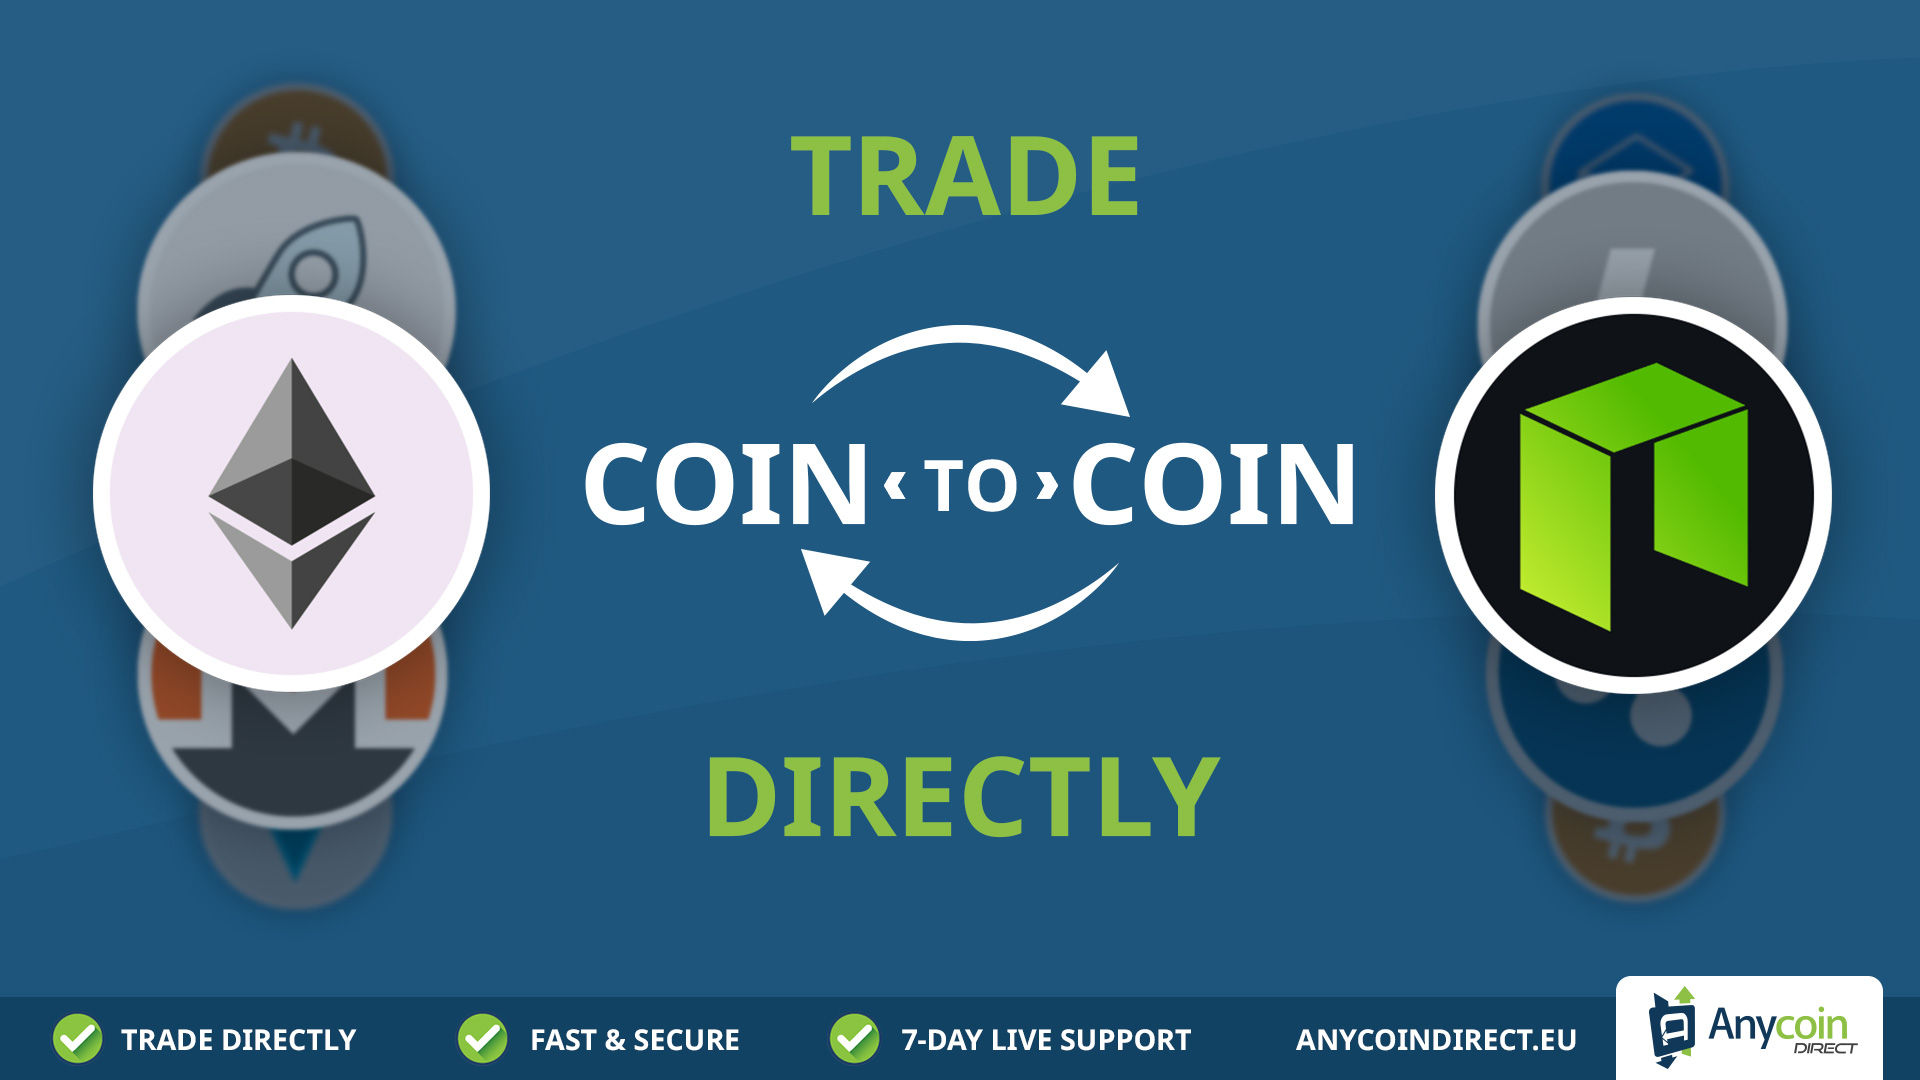 Anycoin Direct voegt nieuwe service toe: Coin-to-Coin traden 0001